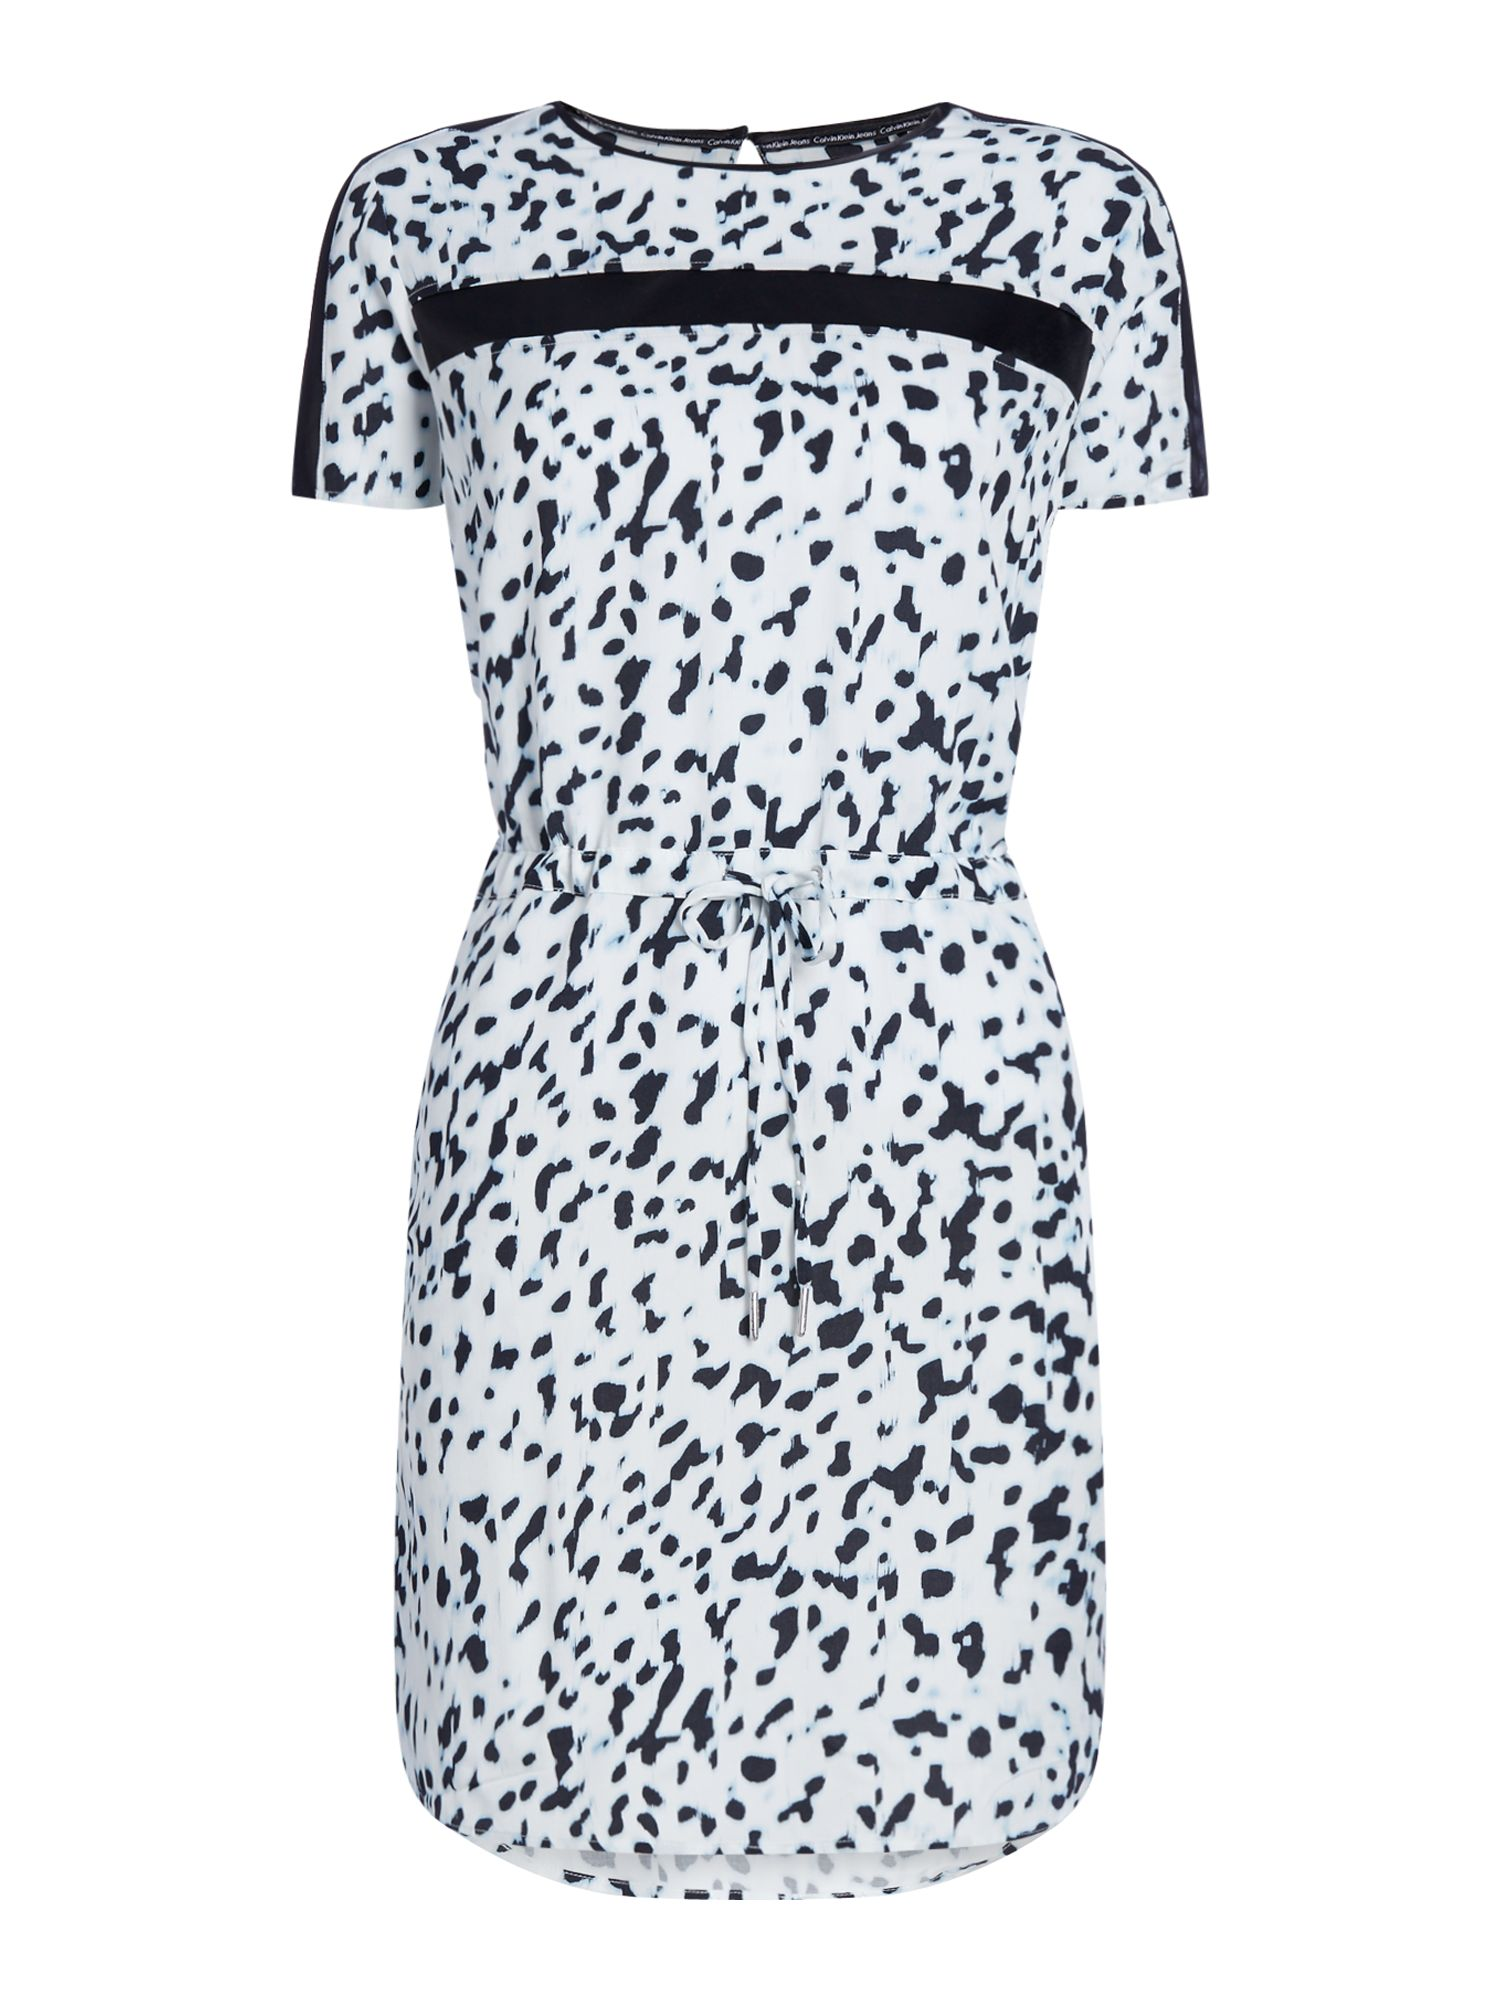 Calvin Klein Short sleeves Dress in Wild Metal AOP, White